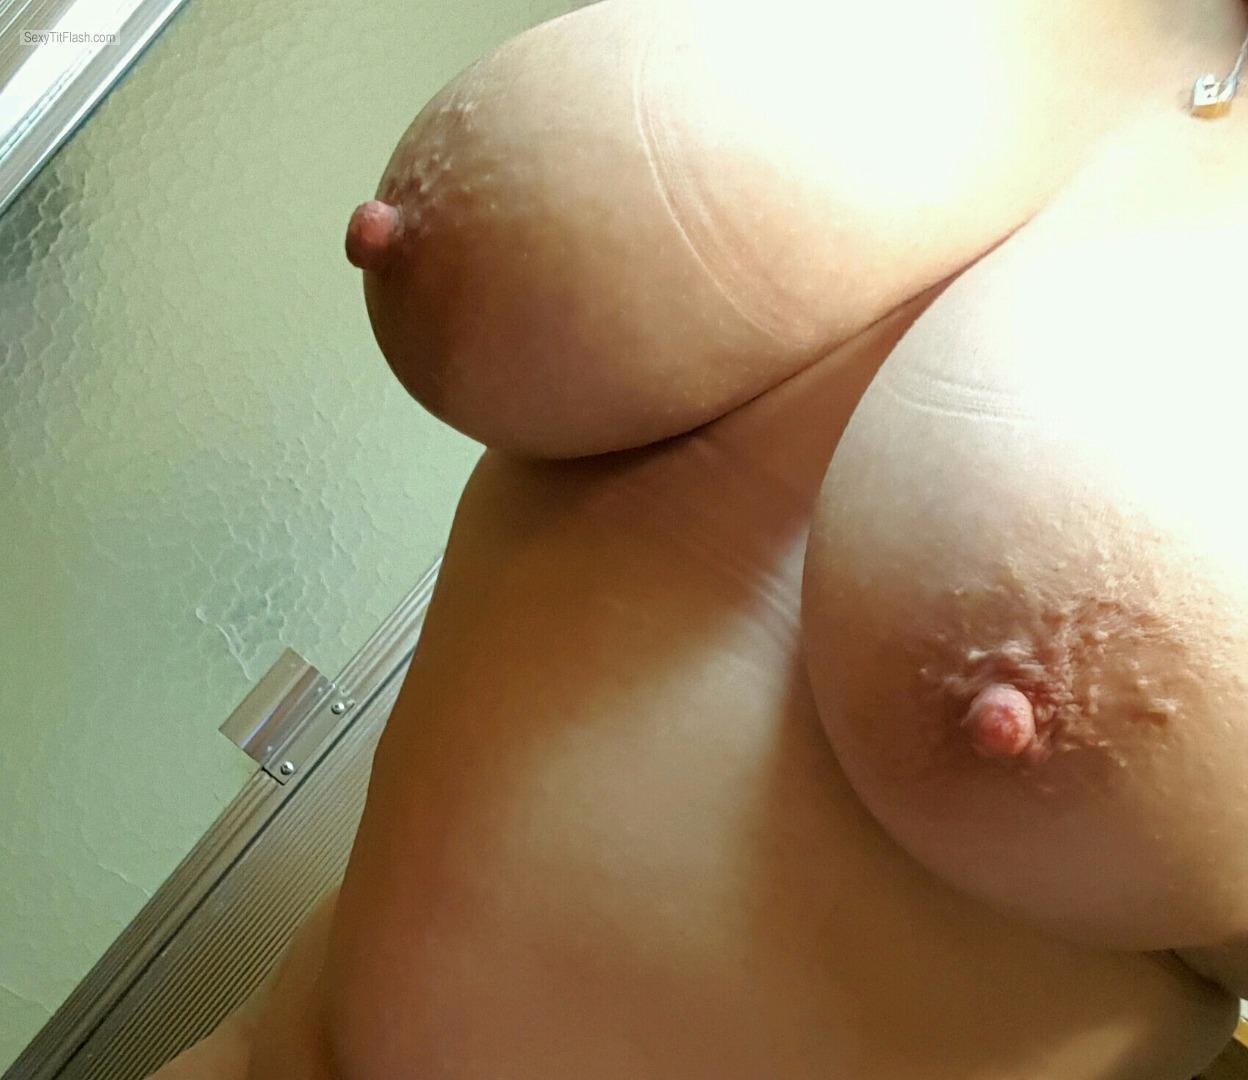 Tit Flash: My Big Tits (Selfie) - MONICA from United States